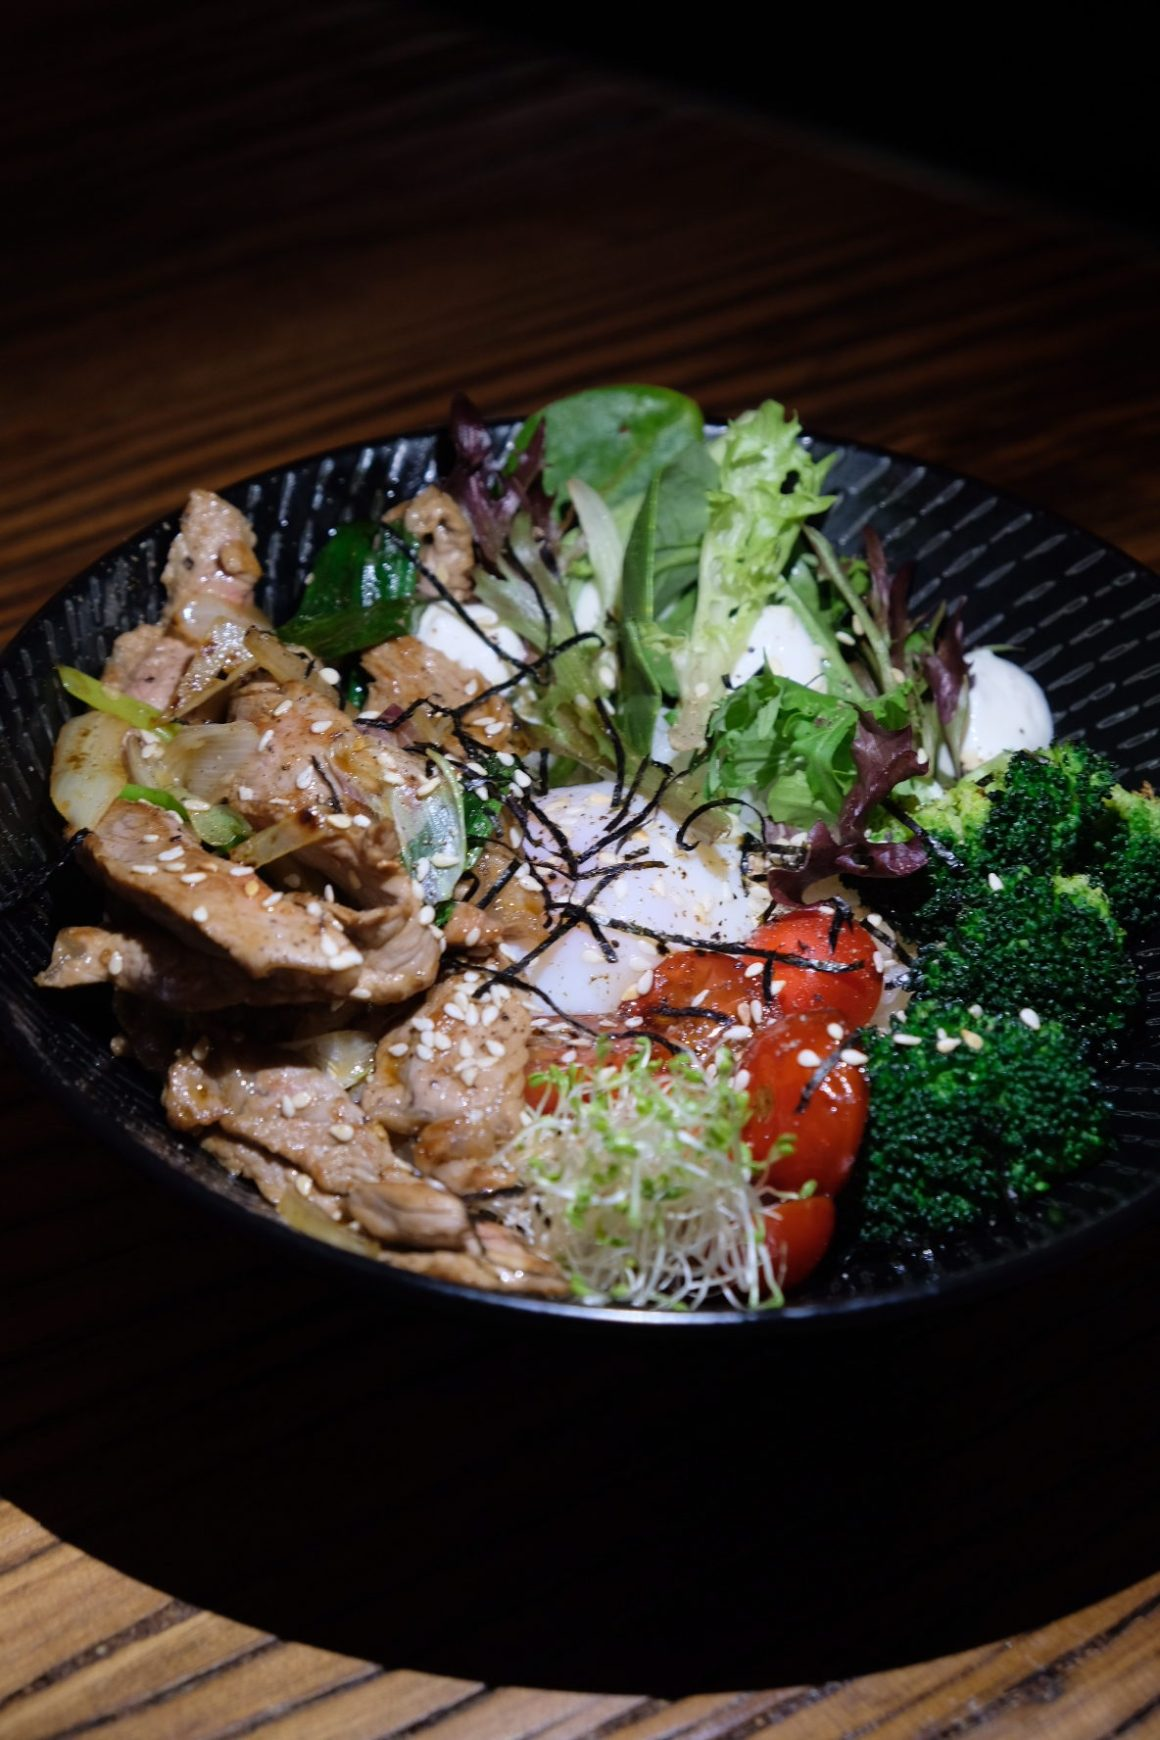 Farmers And Chefs Serving Hearty Wholesome Food - Yakiniku Beef Rice ($14)